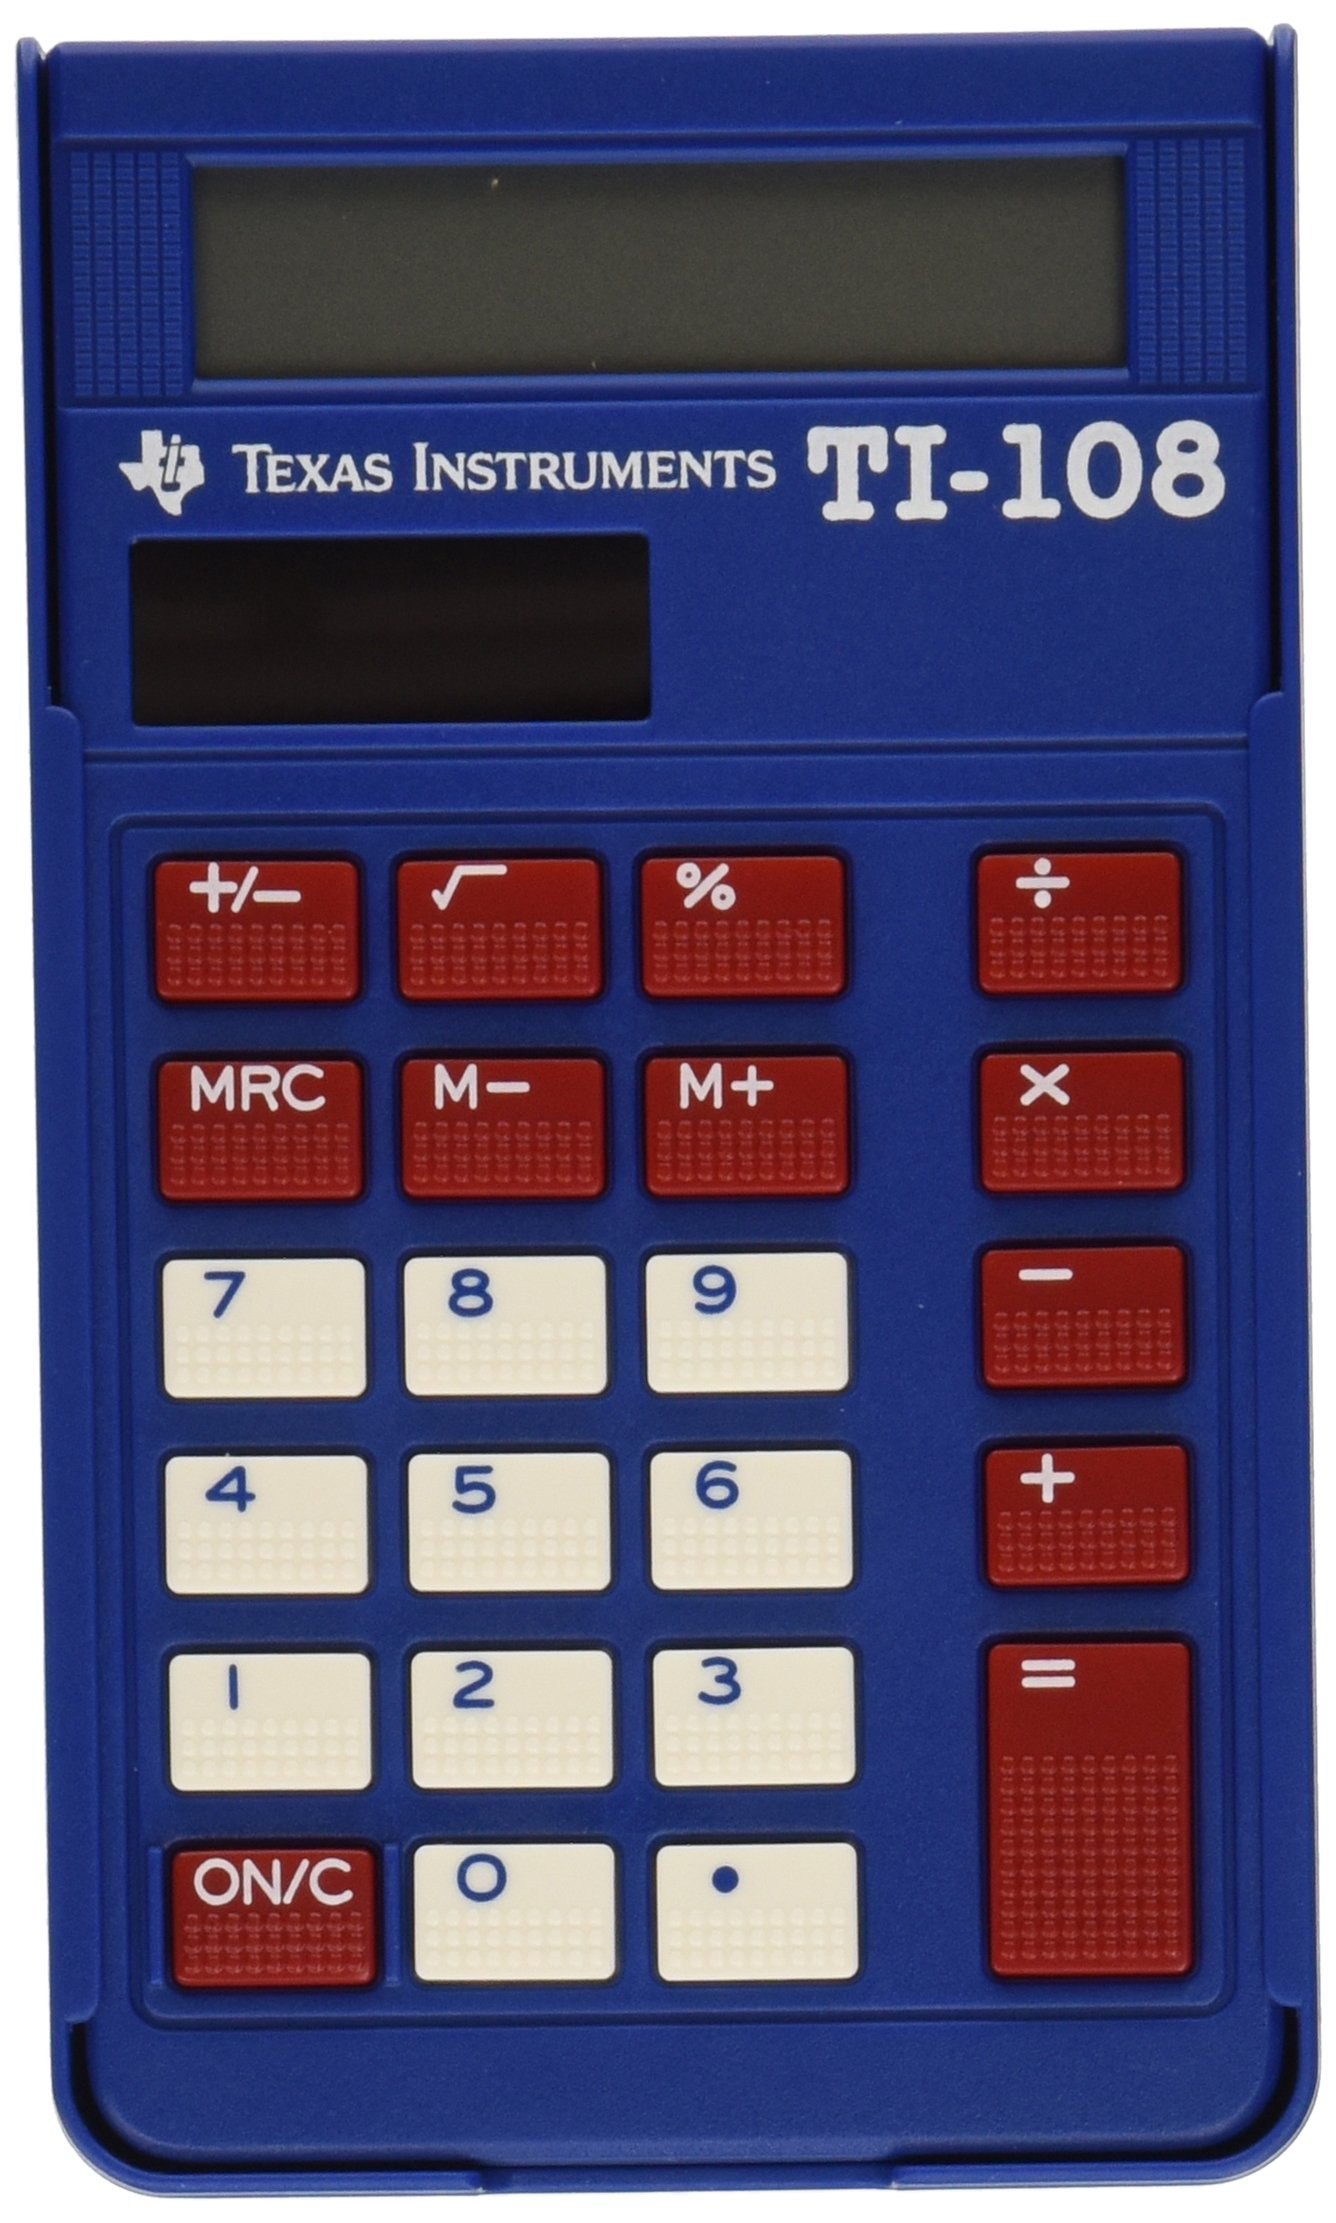 Texas Instruments TI-108 Solar Power Calculator/Teacher's Kit (set of 10) by Texas Instruments